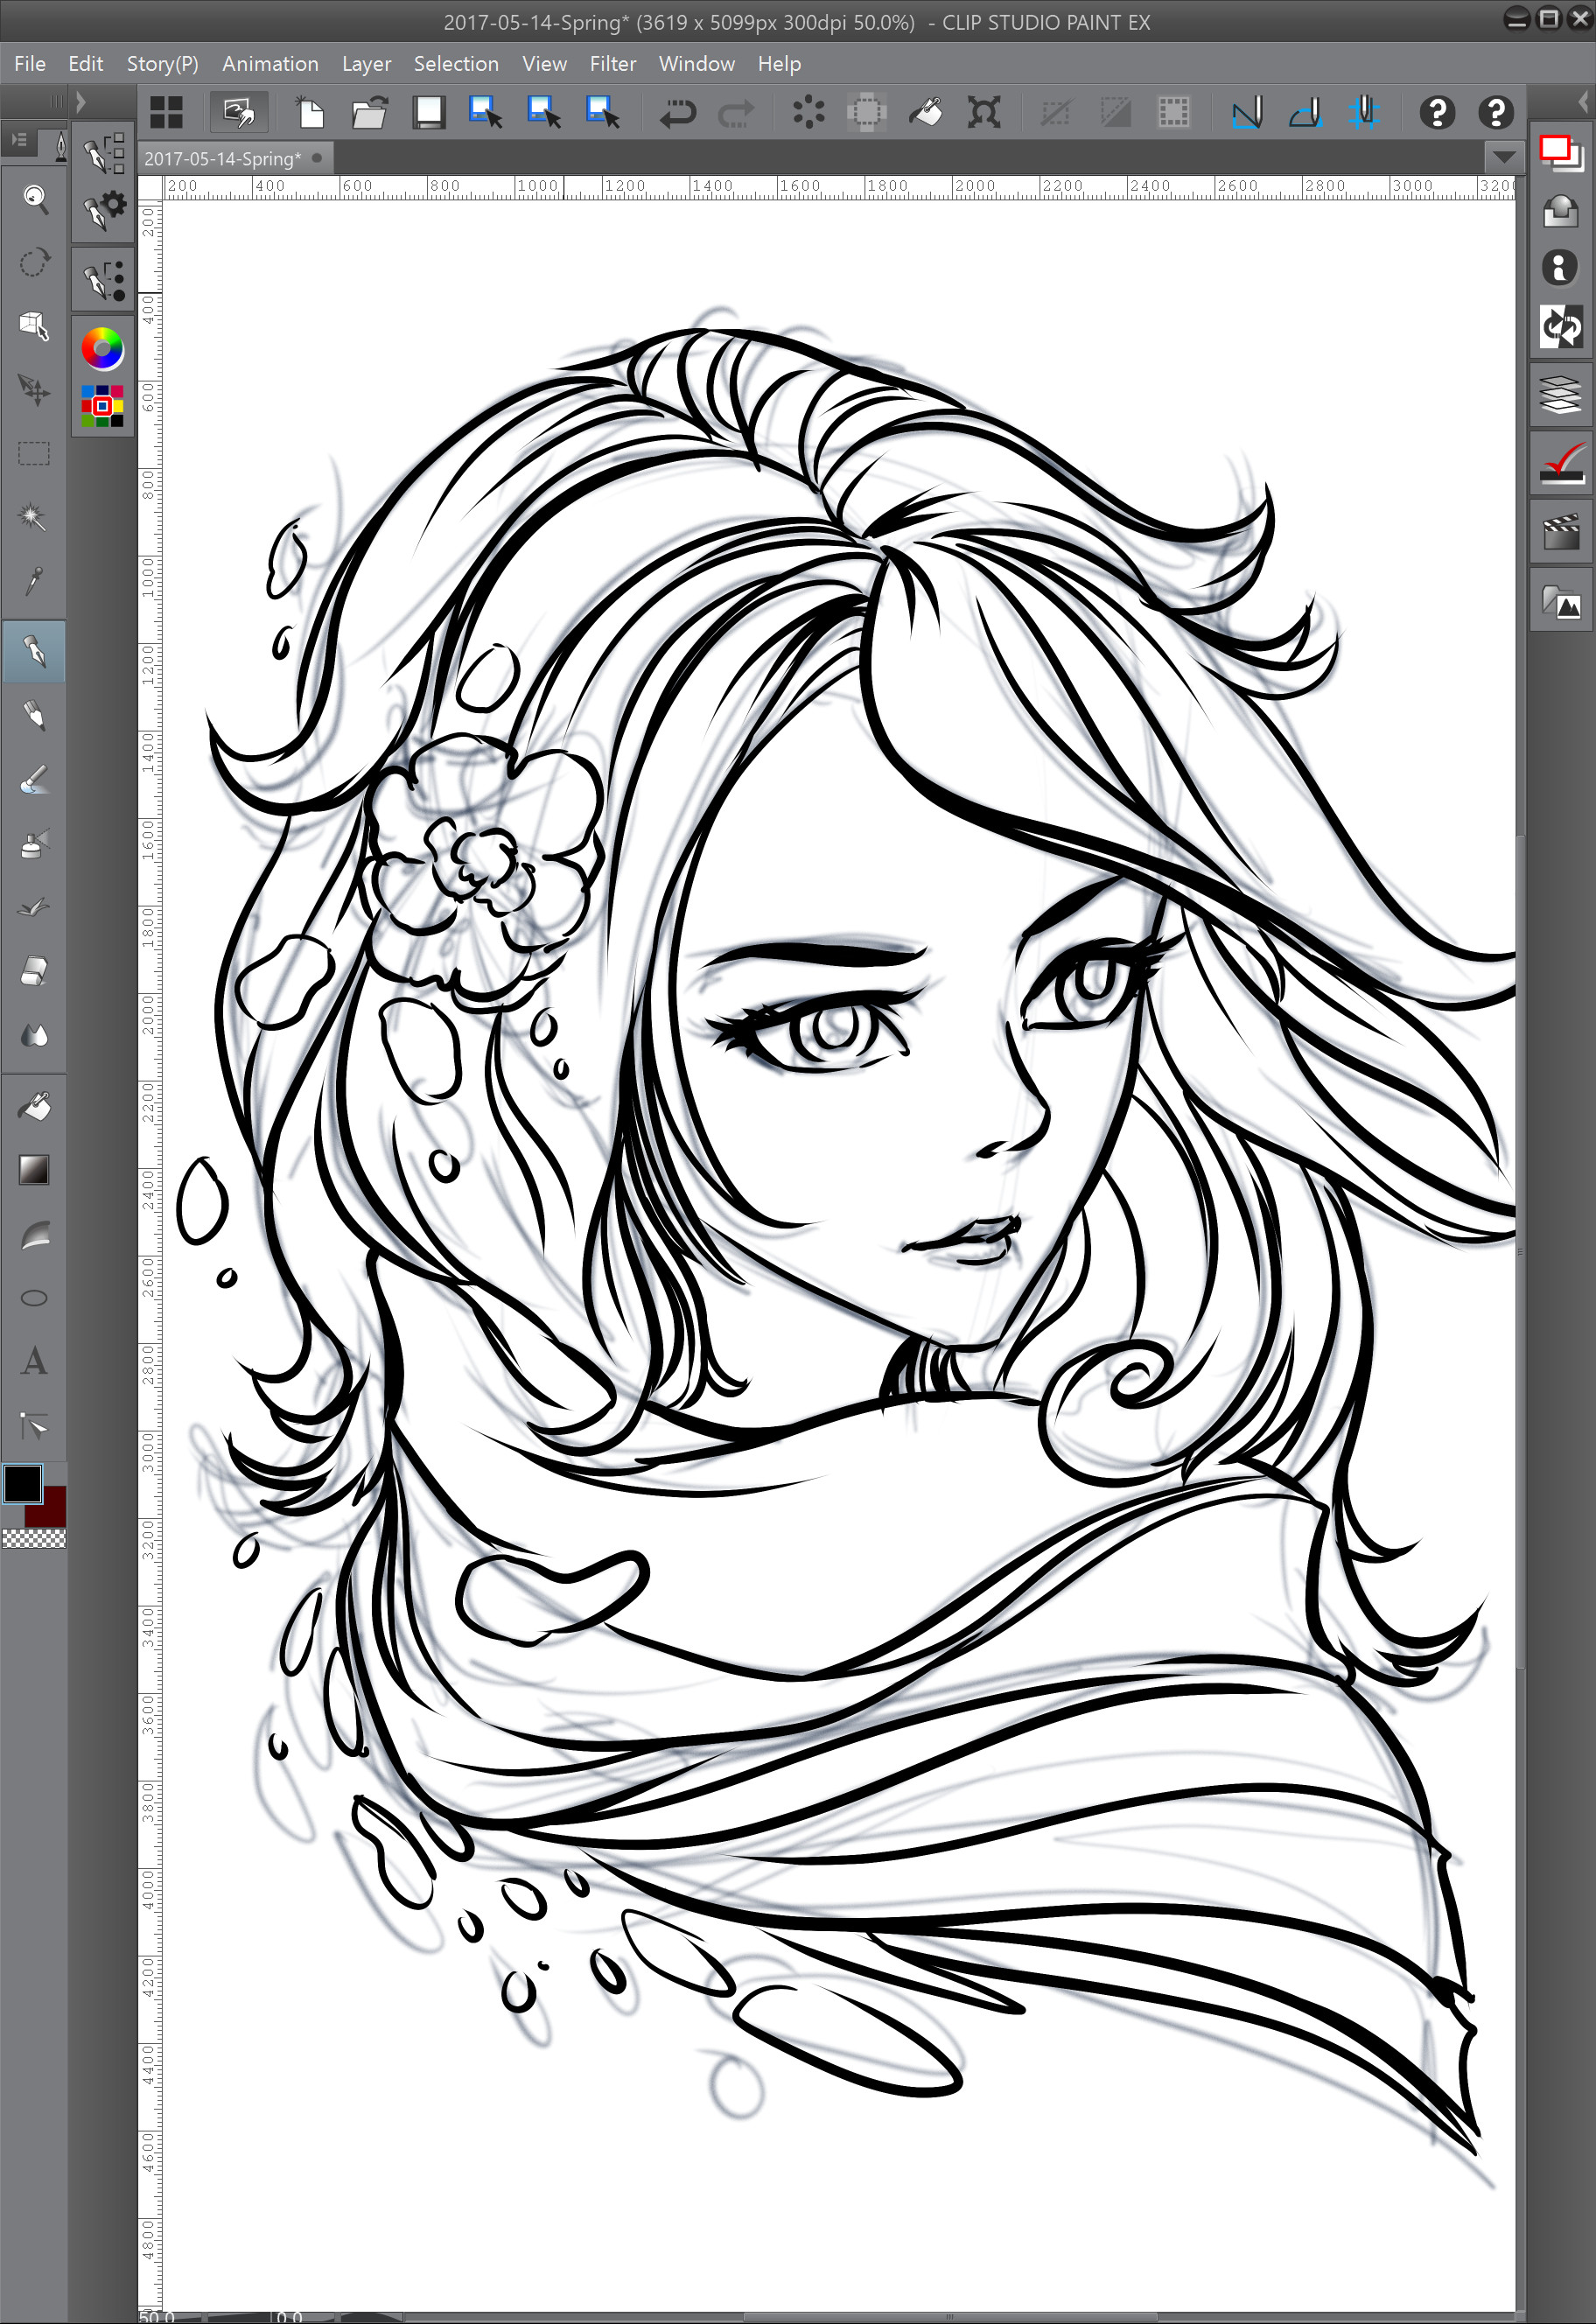 02 - Inking on a new layer